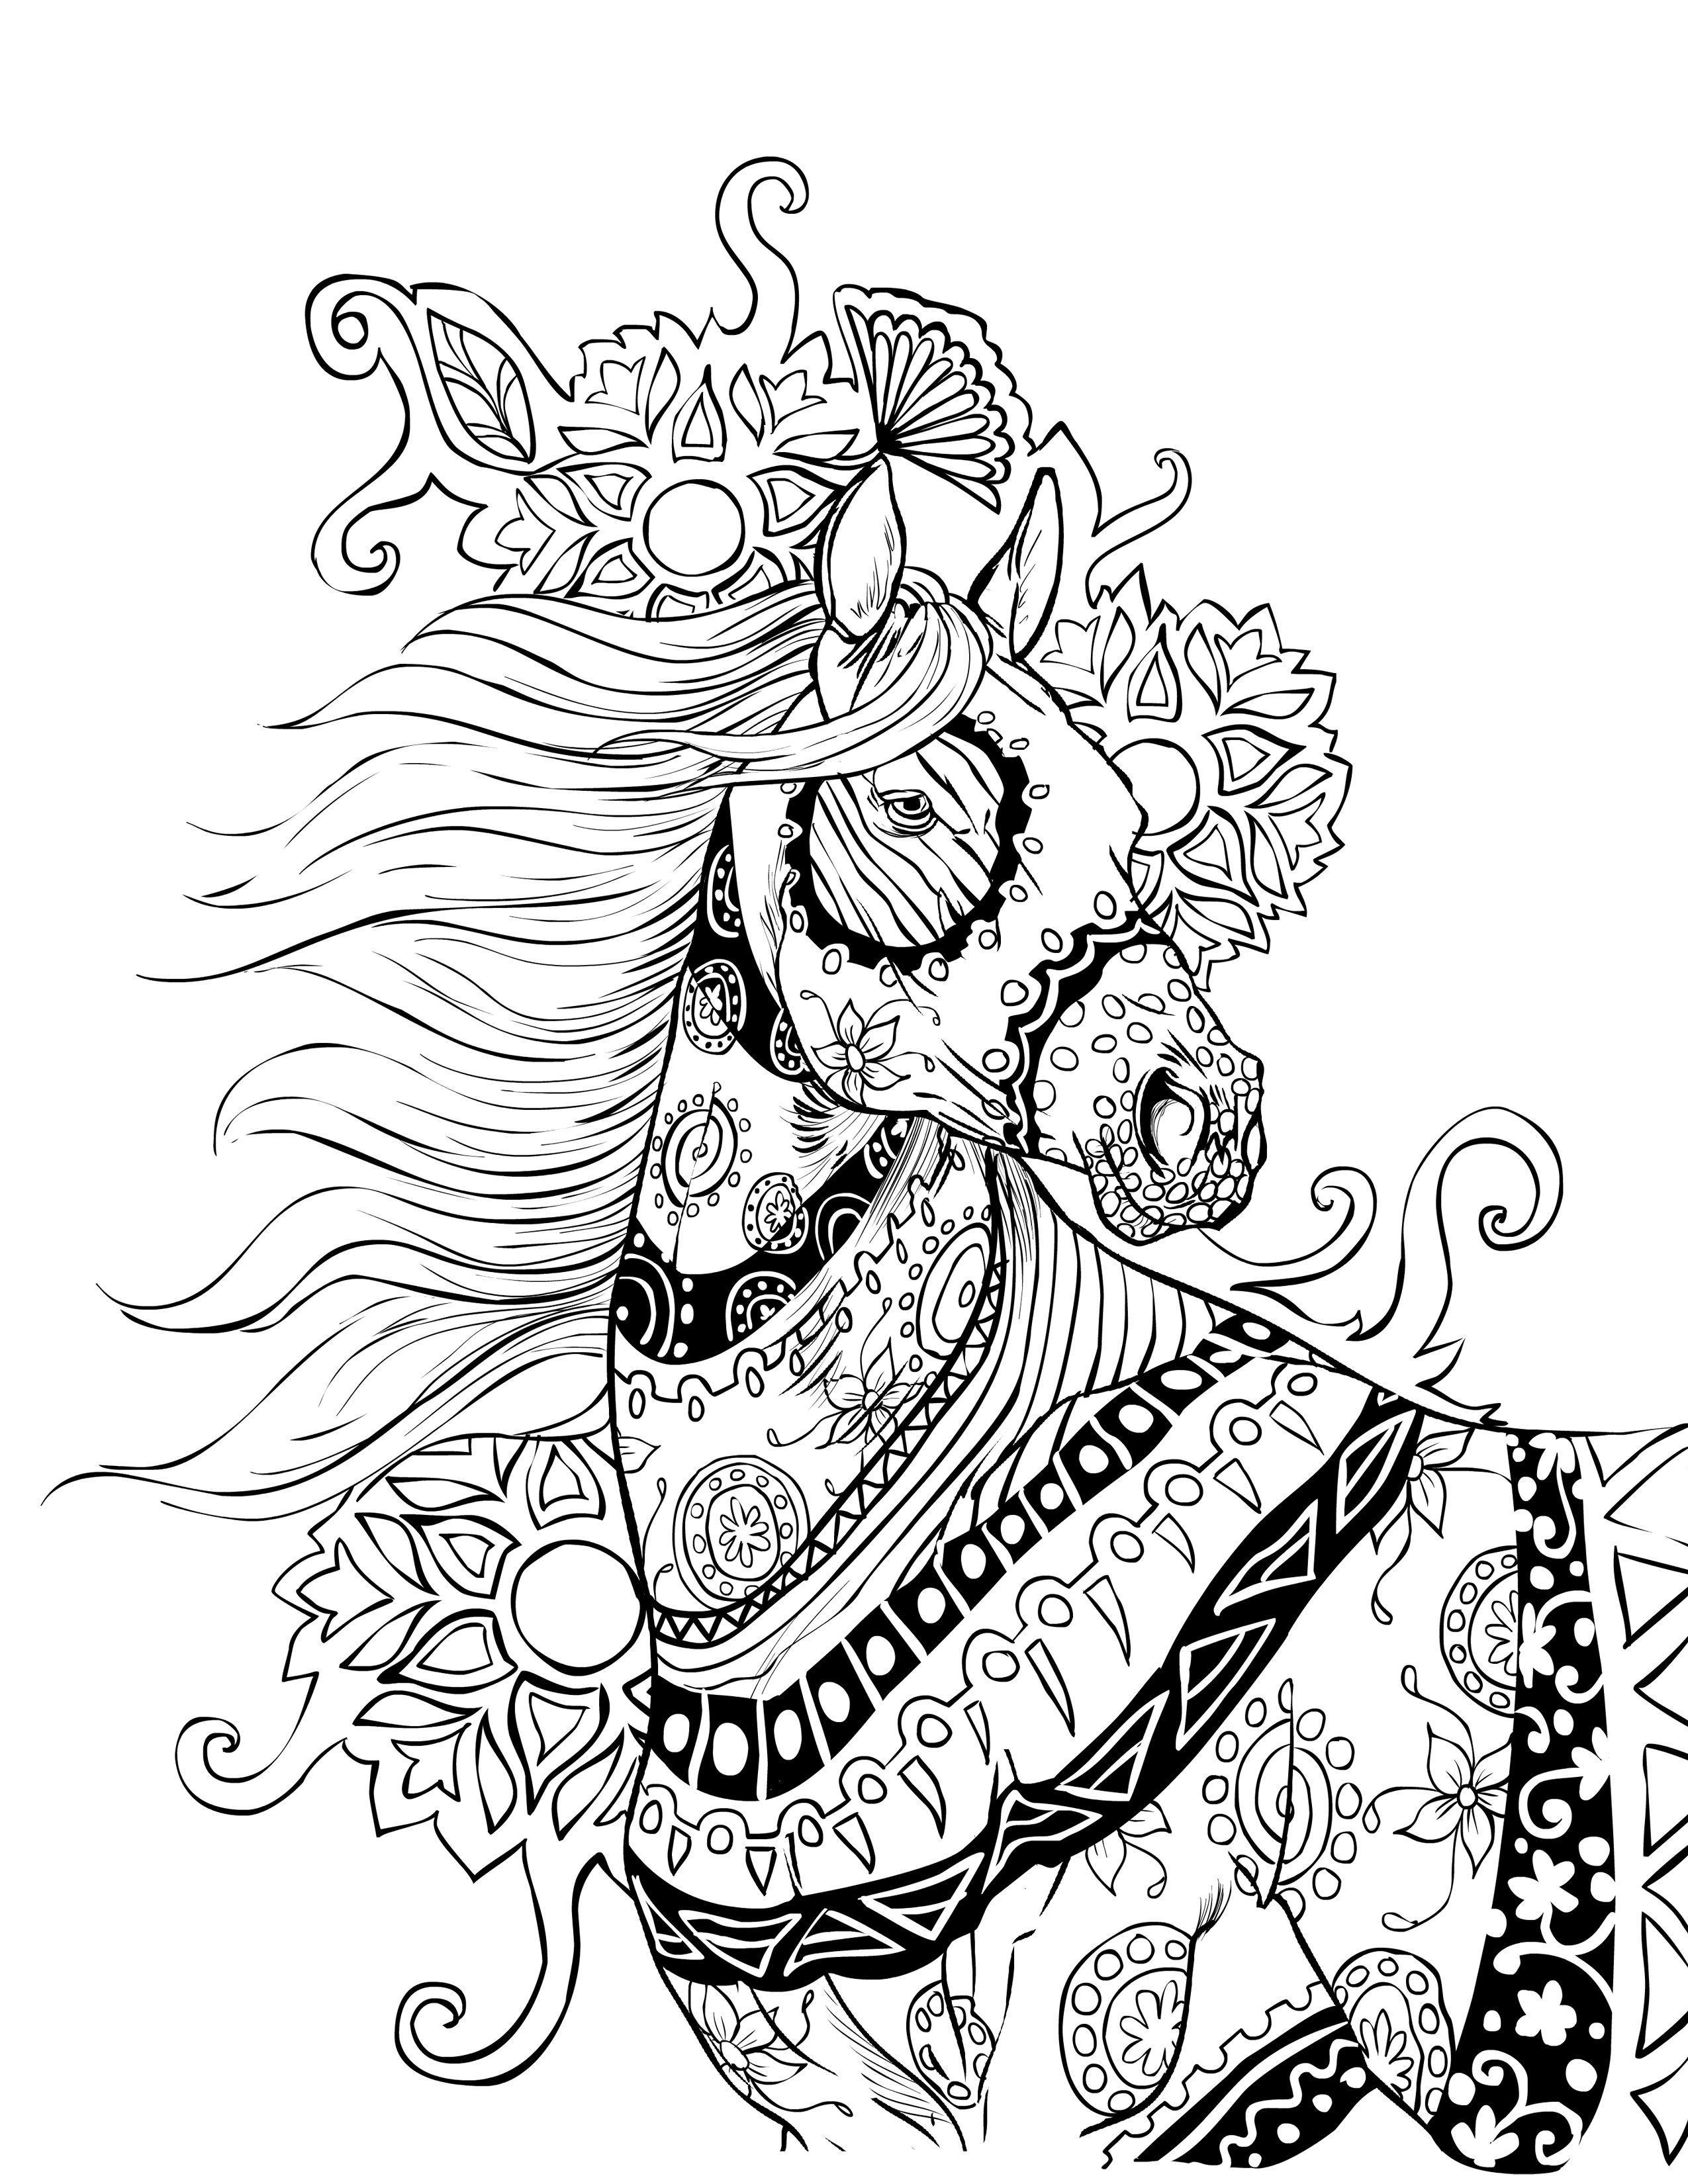 Intricate Coloring Page For Adults